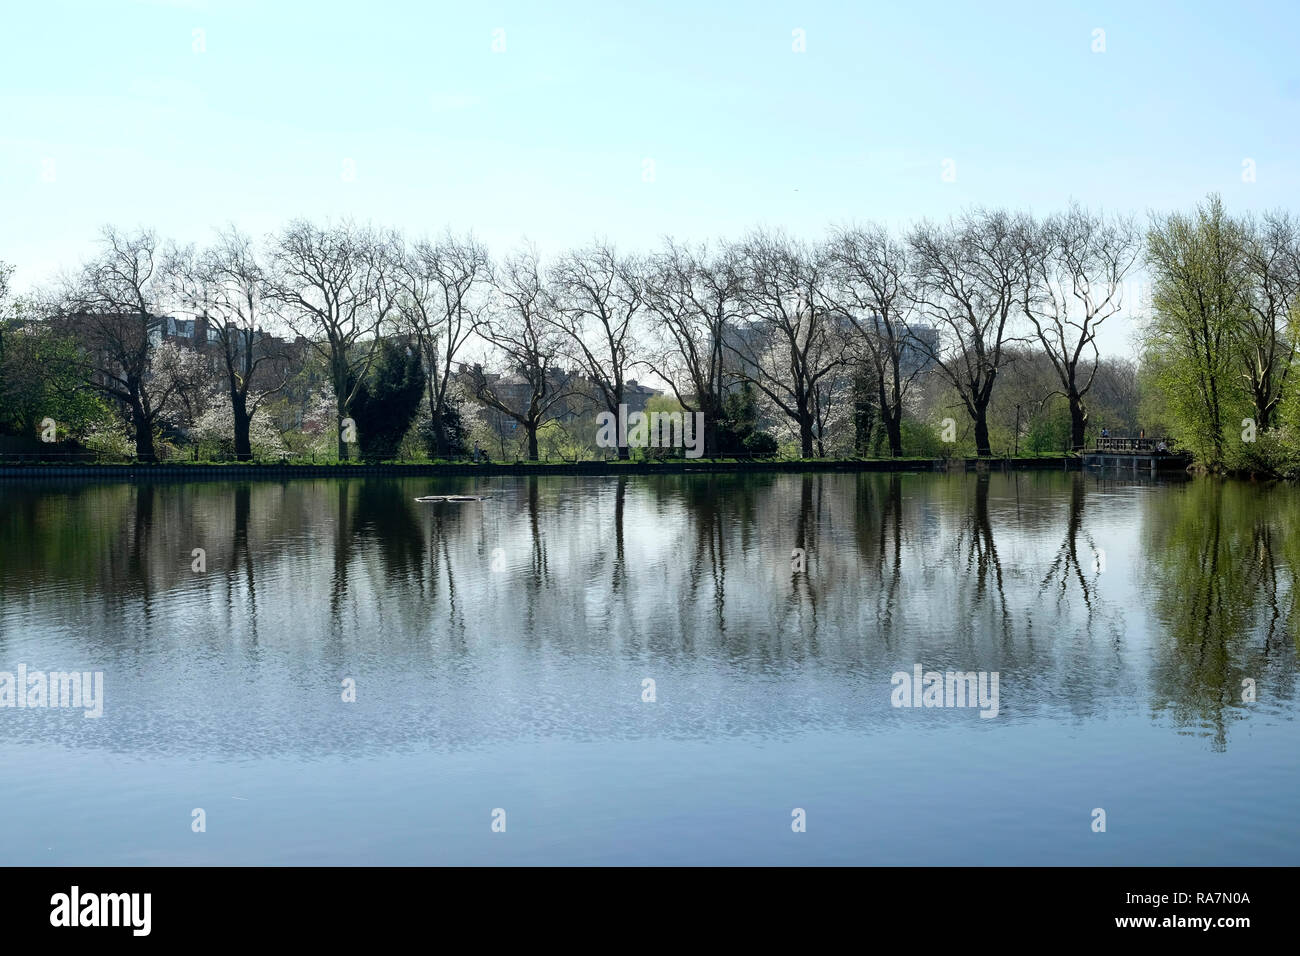 Reflection of trees in a pond, Hampstead Heath, London - Stock Image